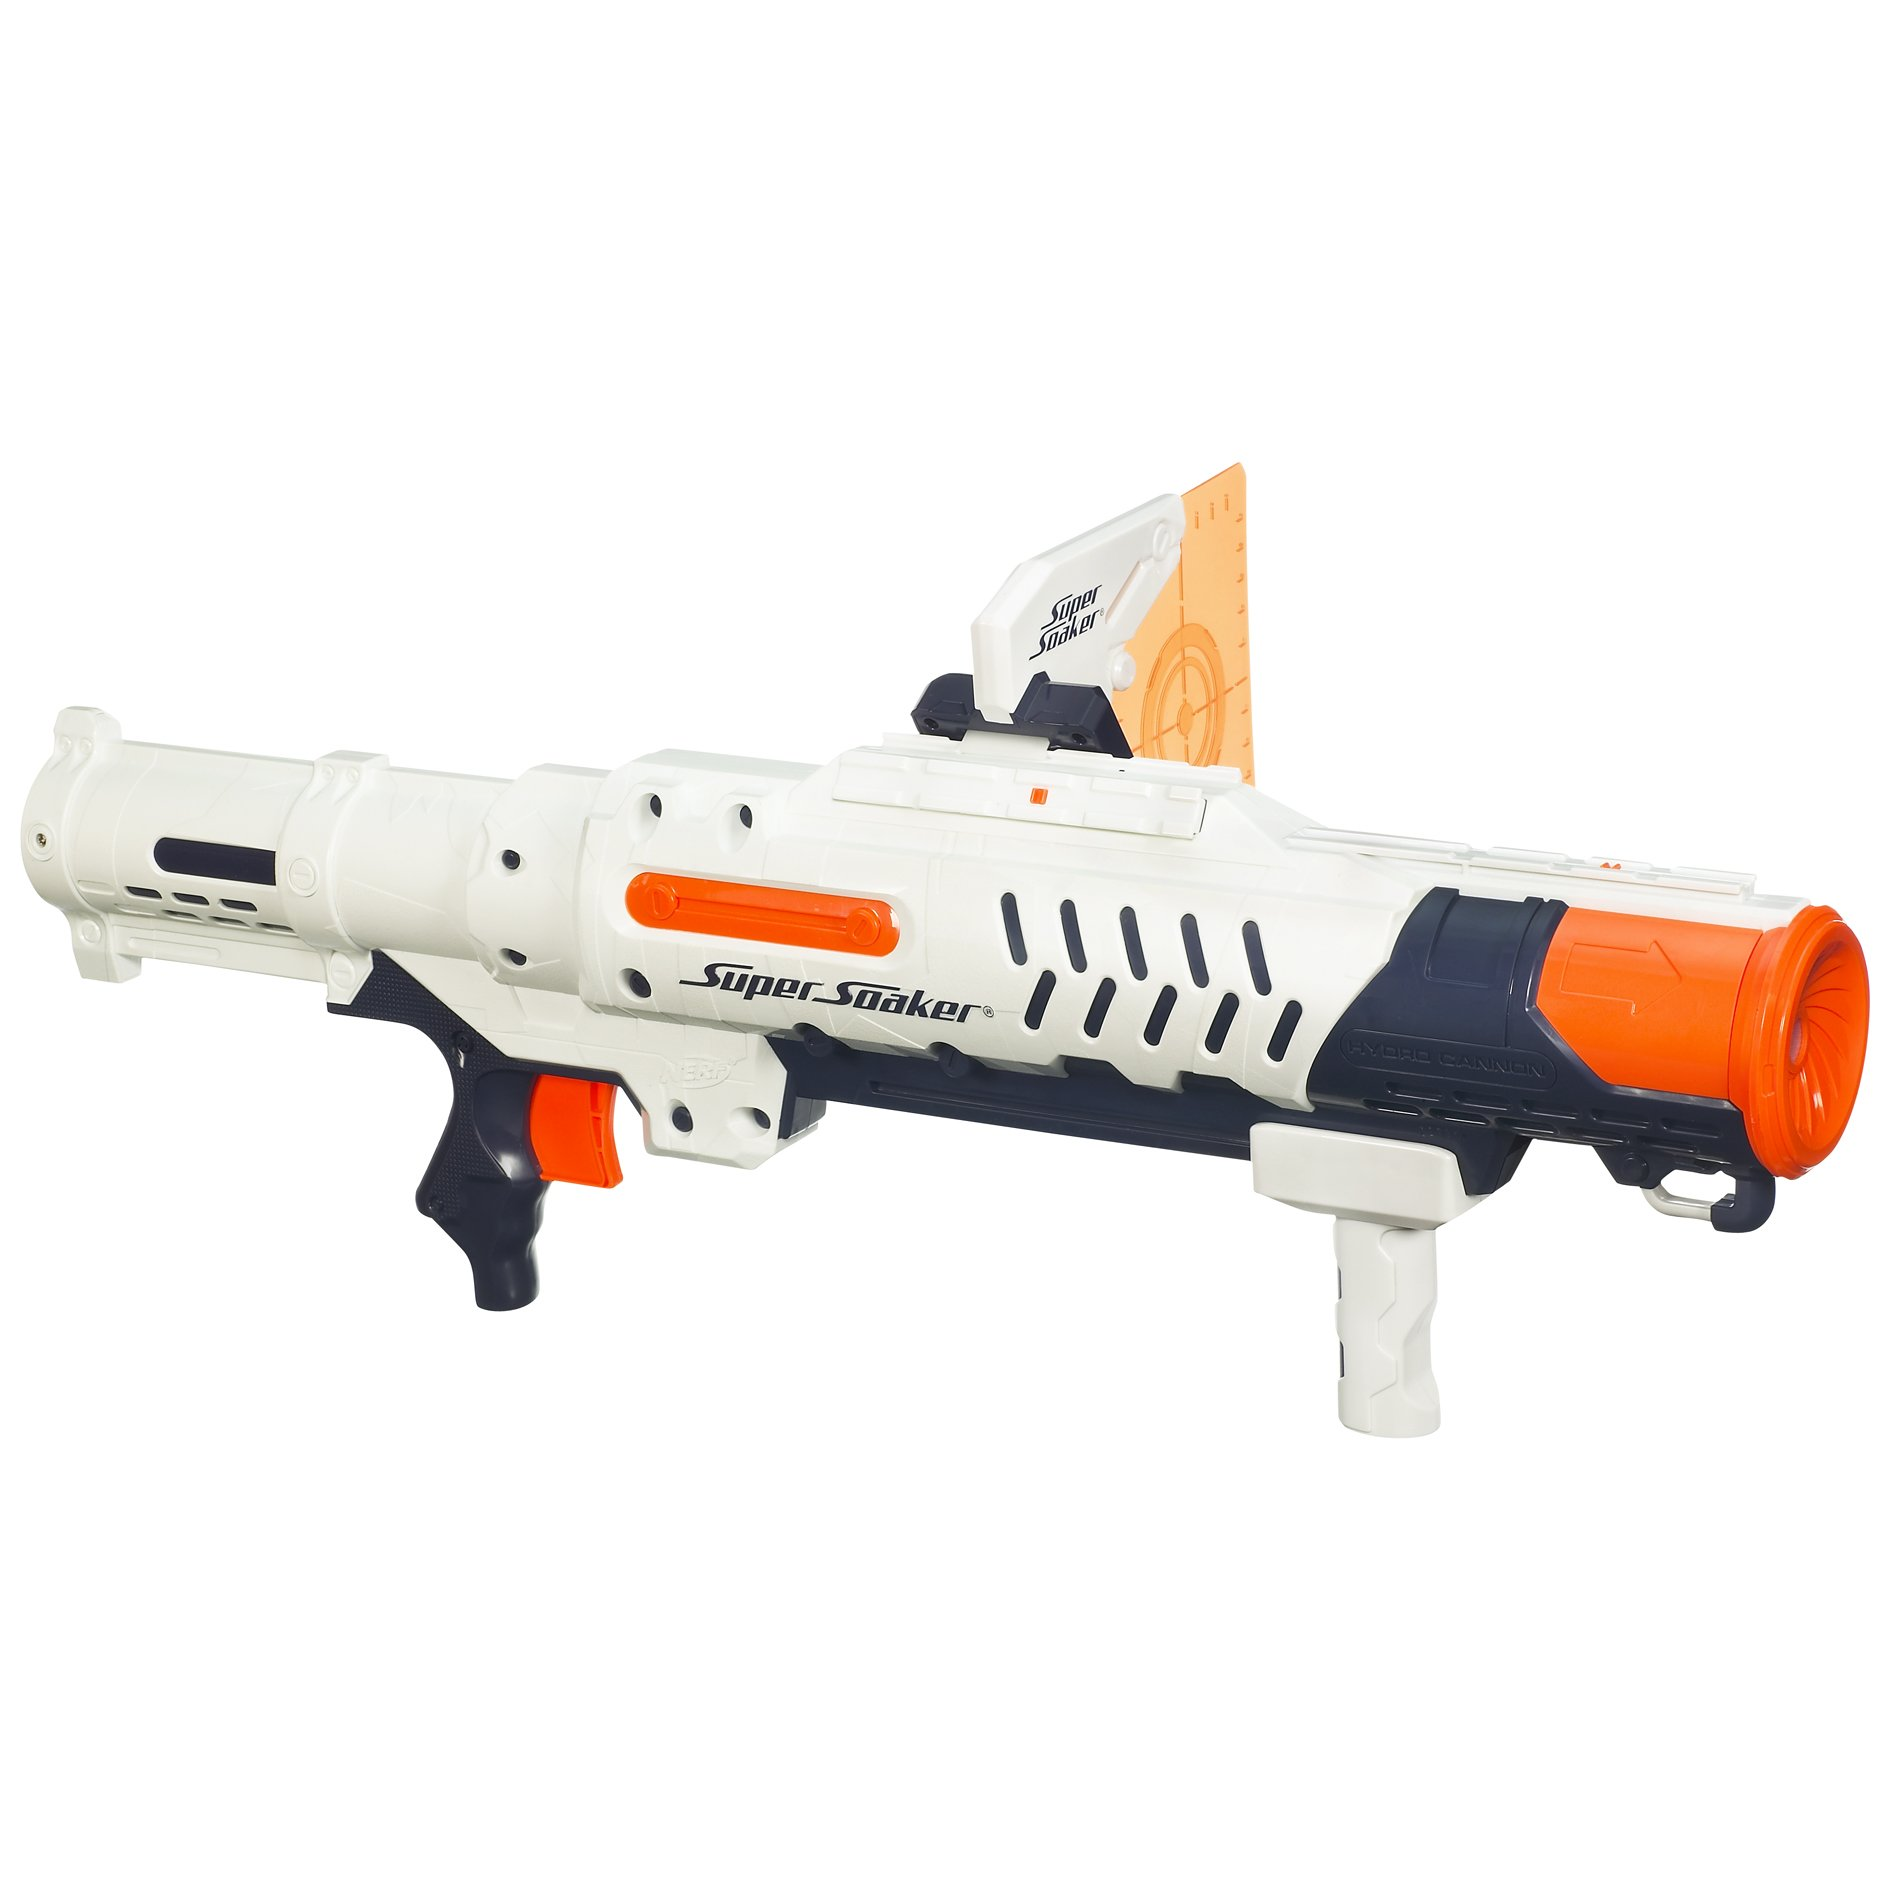 Nerf Super Soaker Hydro Cannon by NERF